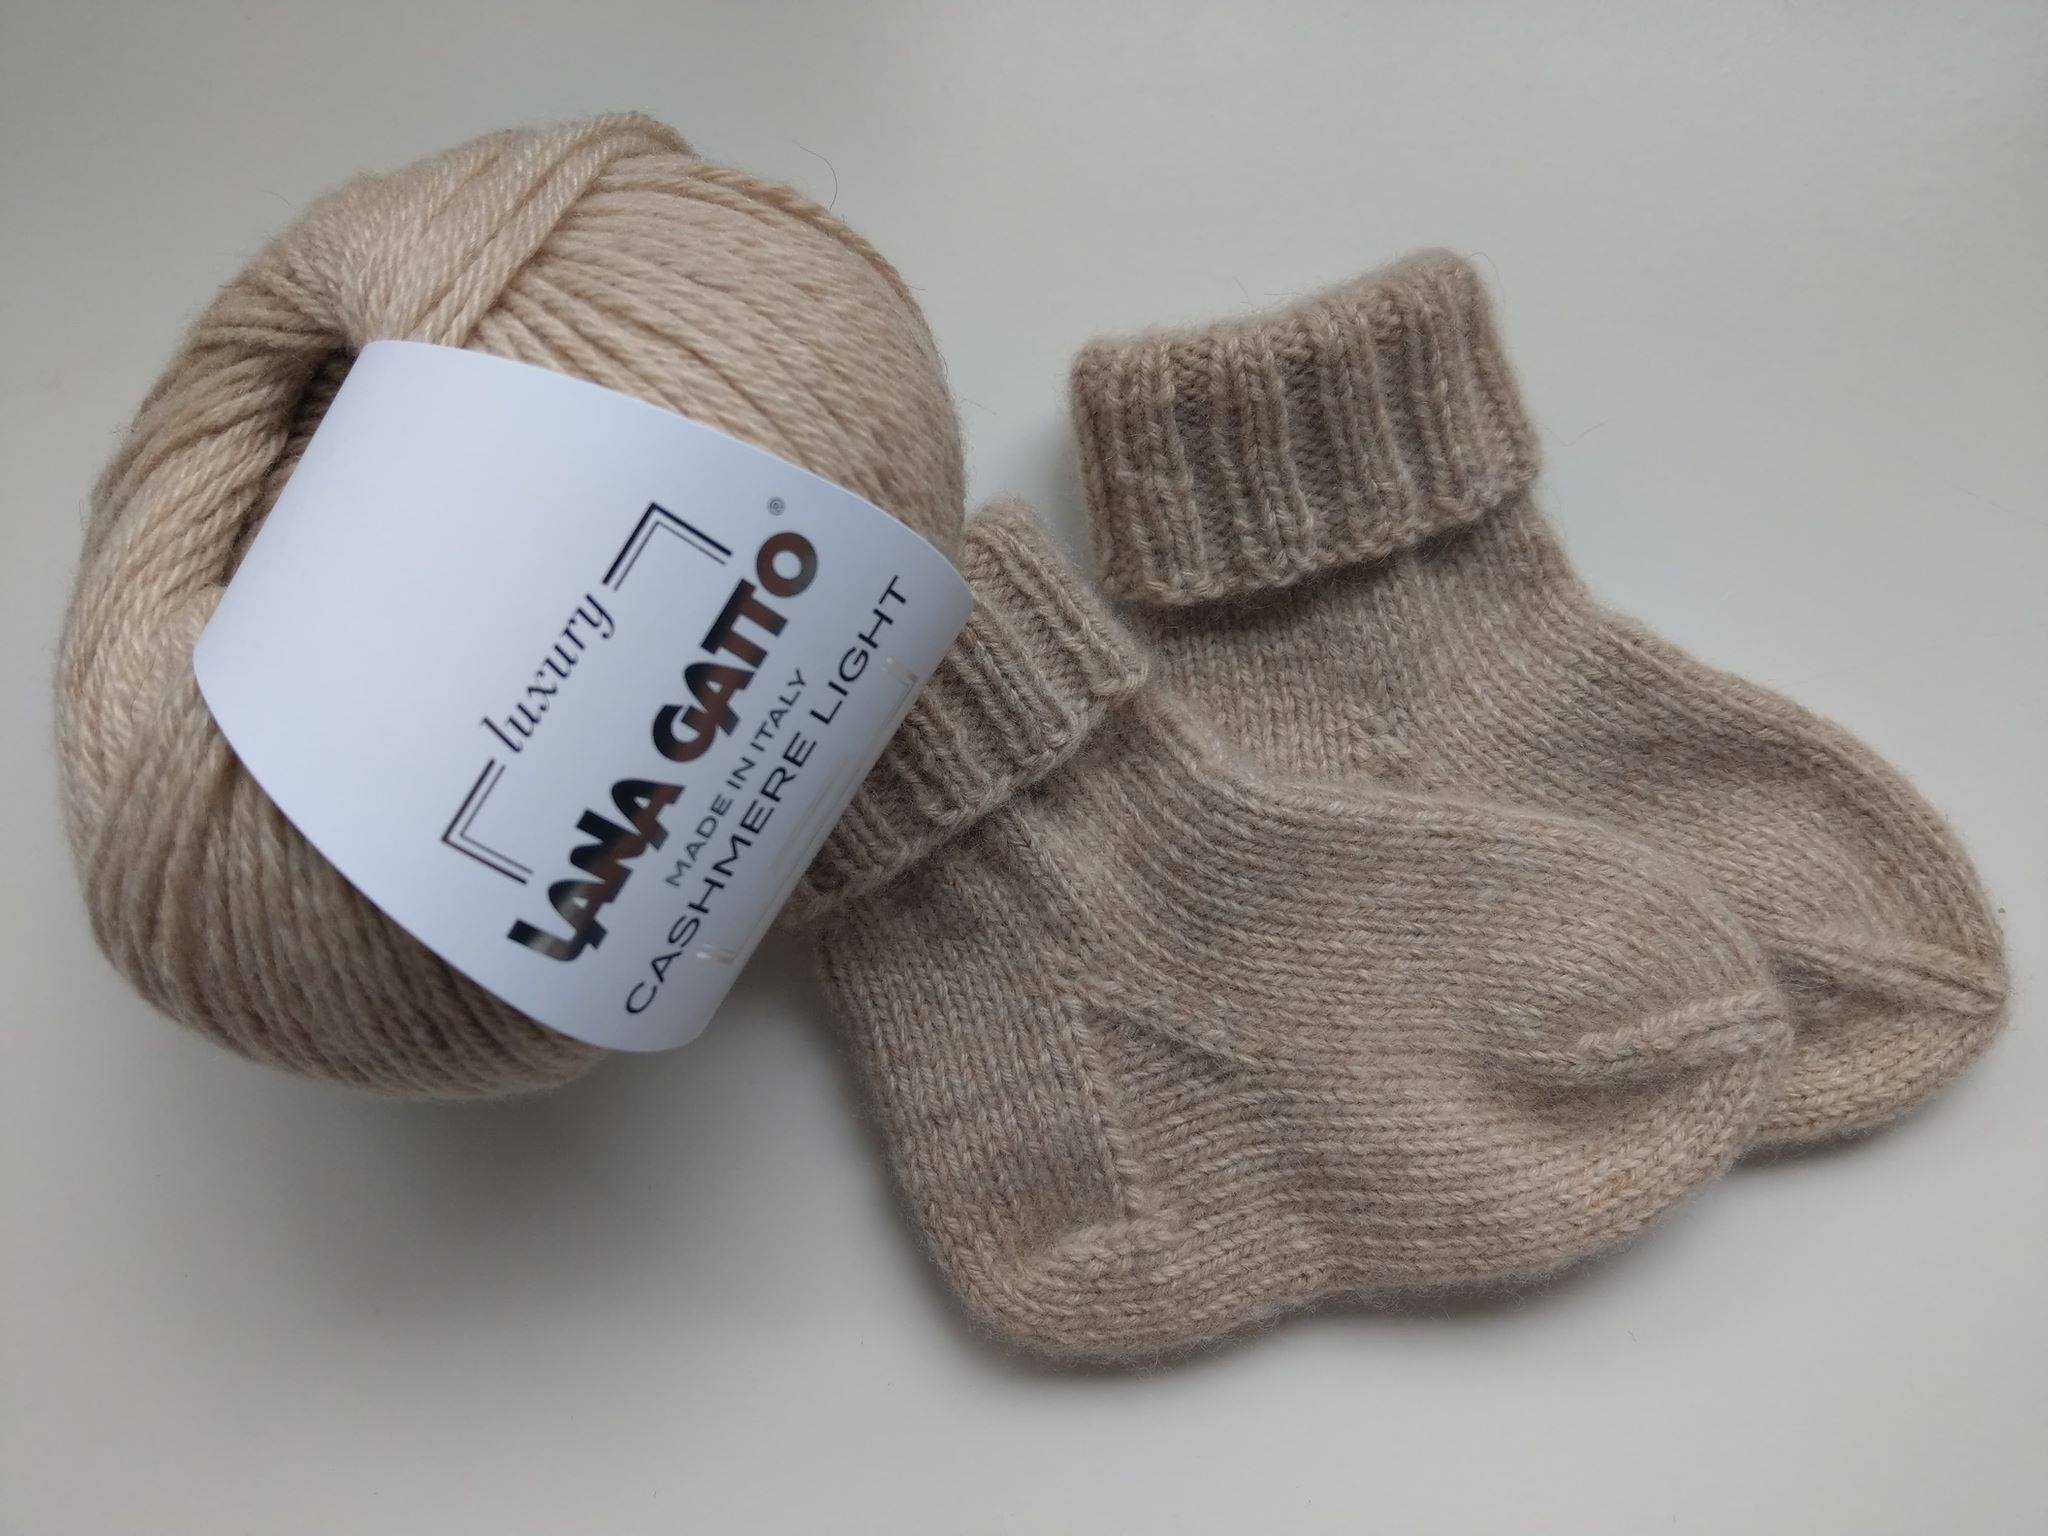 lana-gatto-cashmere-light-socks